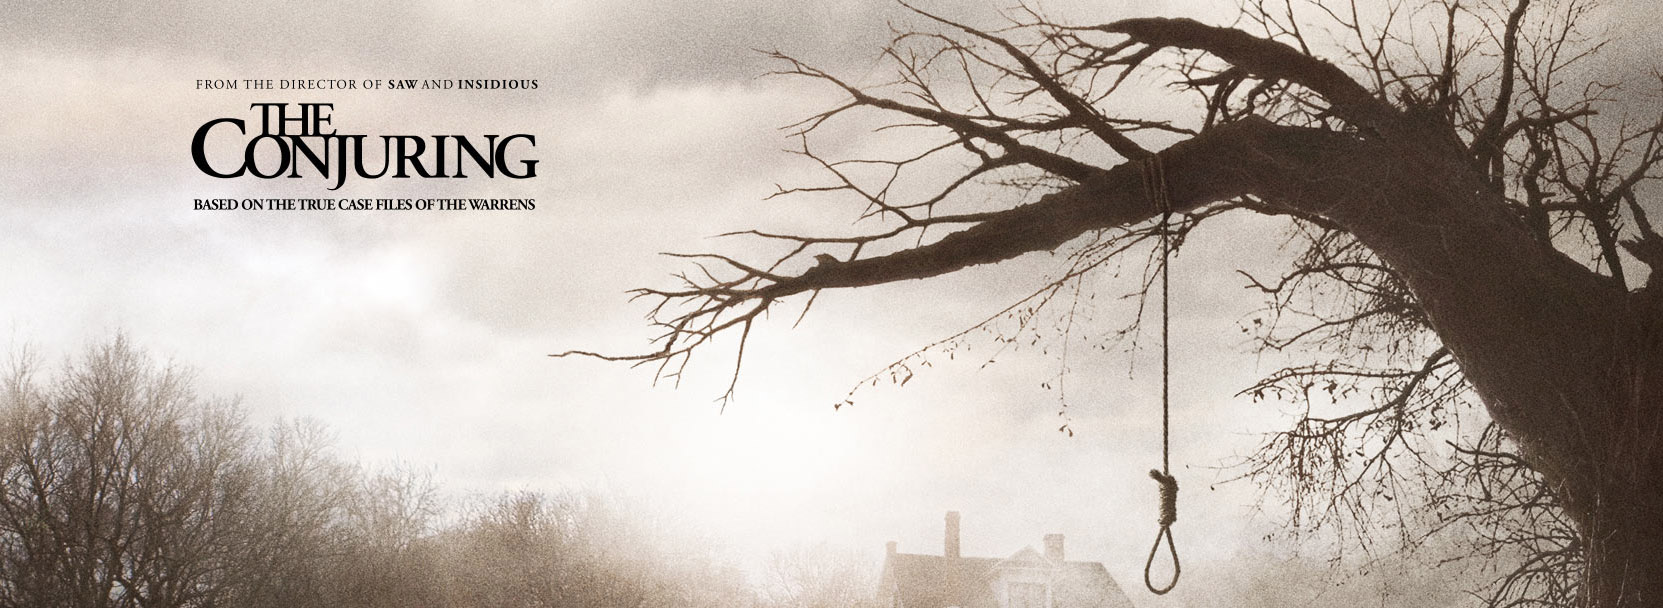 the conjuring cover - The Conjuring (Movie Review)